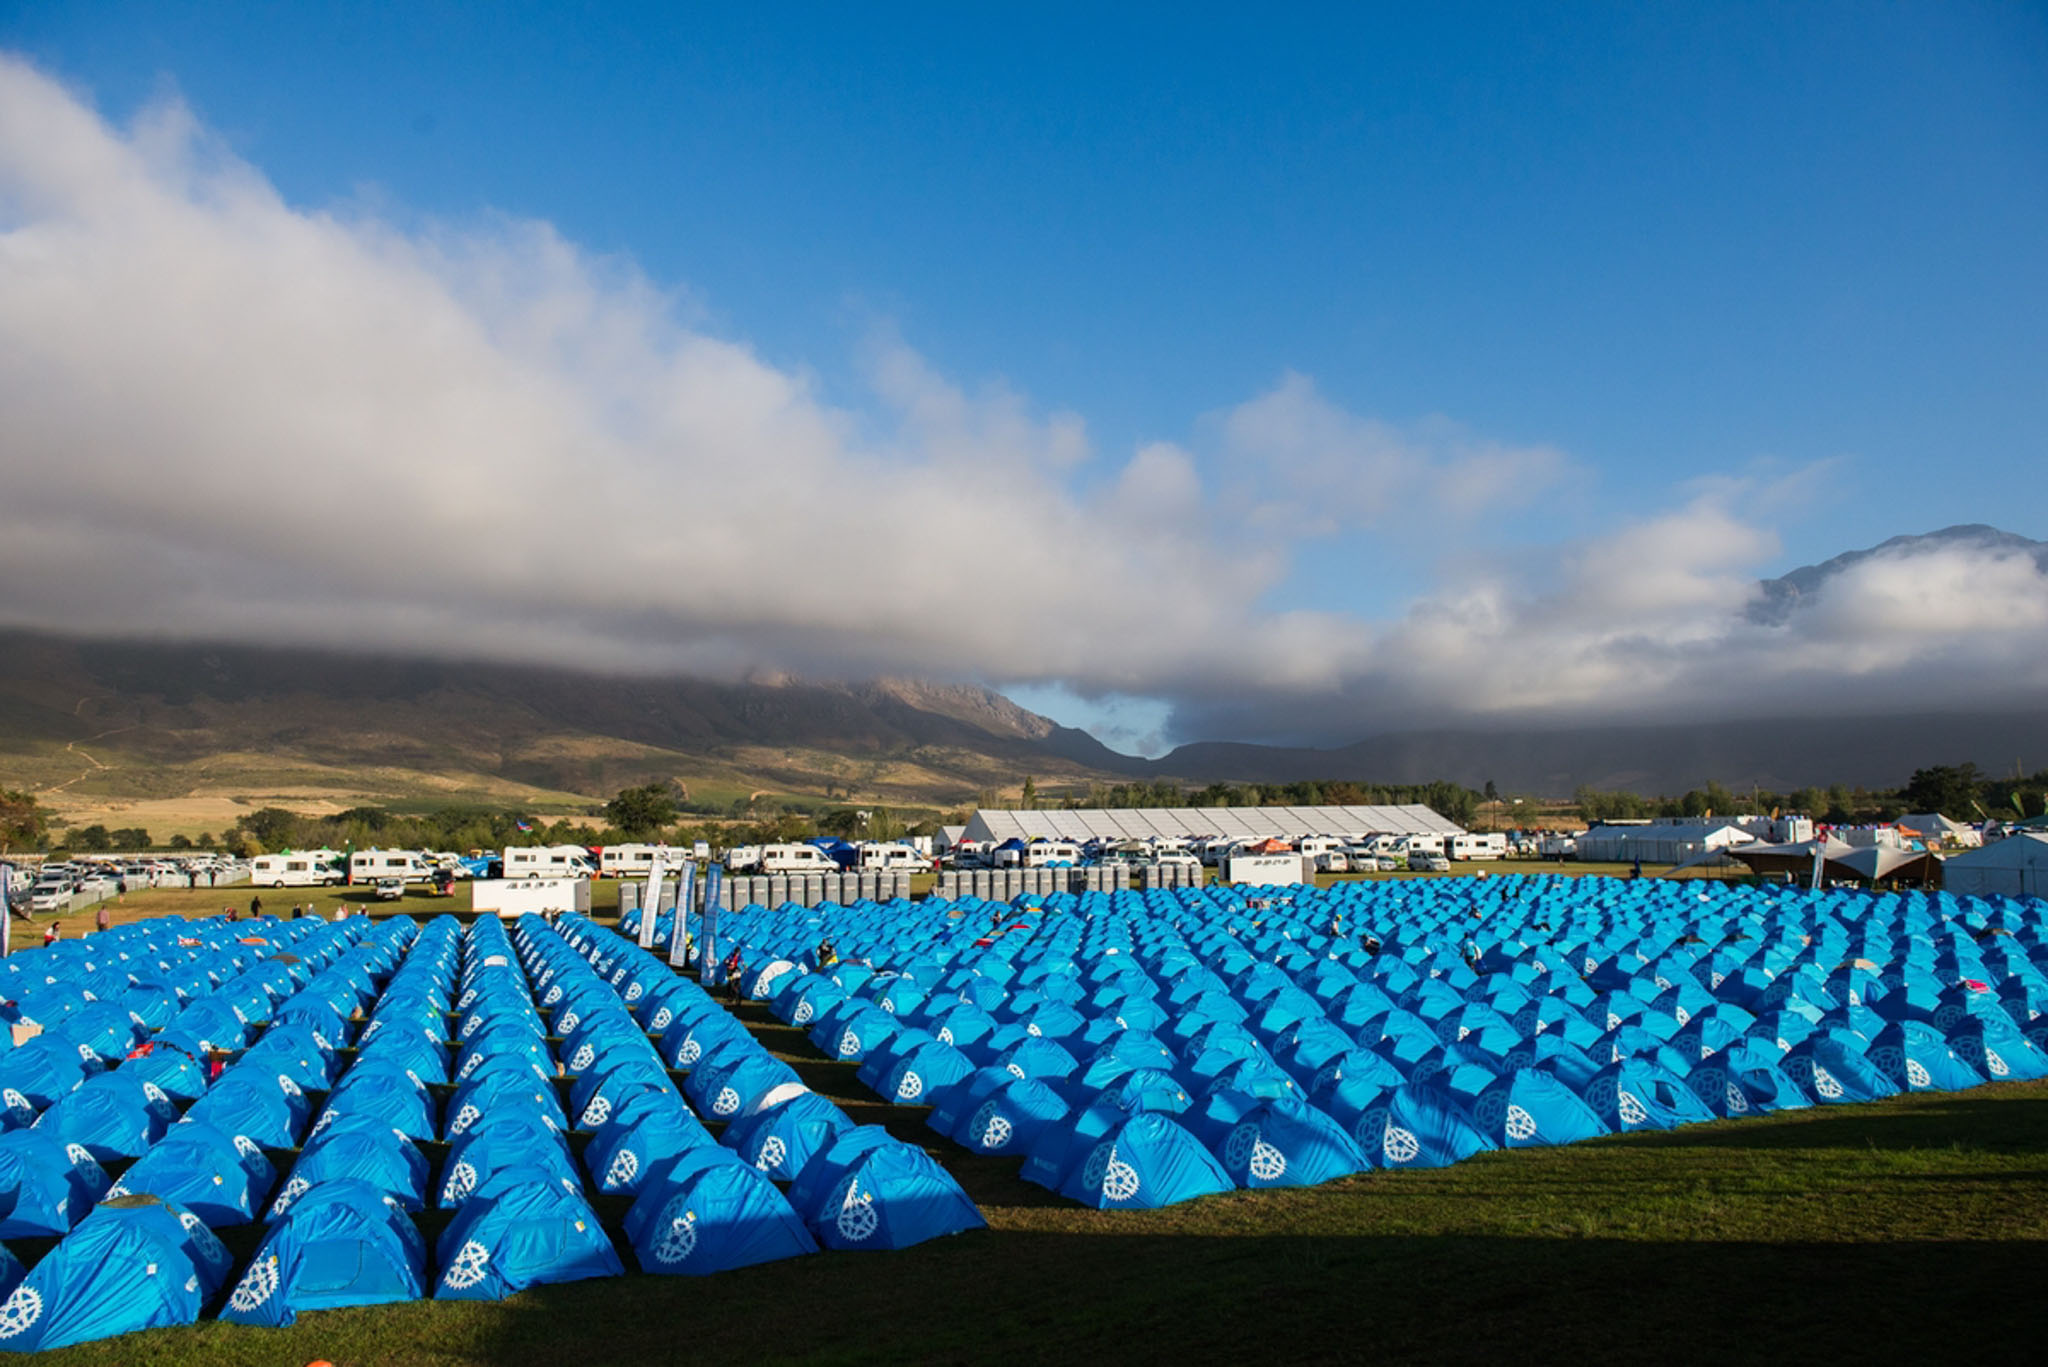 A sea of rider tents, during stage 2 of the 2016 Absa Cape Epic Mountain Bike stage race from Saronsberg Wine Estate in Tulbagh, South Africa on the 15th March 2016 Photo by Emma Hill/Cape Epic/SPORTZPICS PLEASE ENSURE THE APPROPRIATE CREDIT IS GIVEN TO THE PHOTOGRAPHER AND SPORTZPICS ALONG WITH THE ABSA CAPE EPIC ace2016